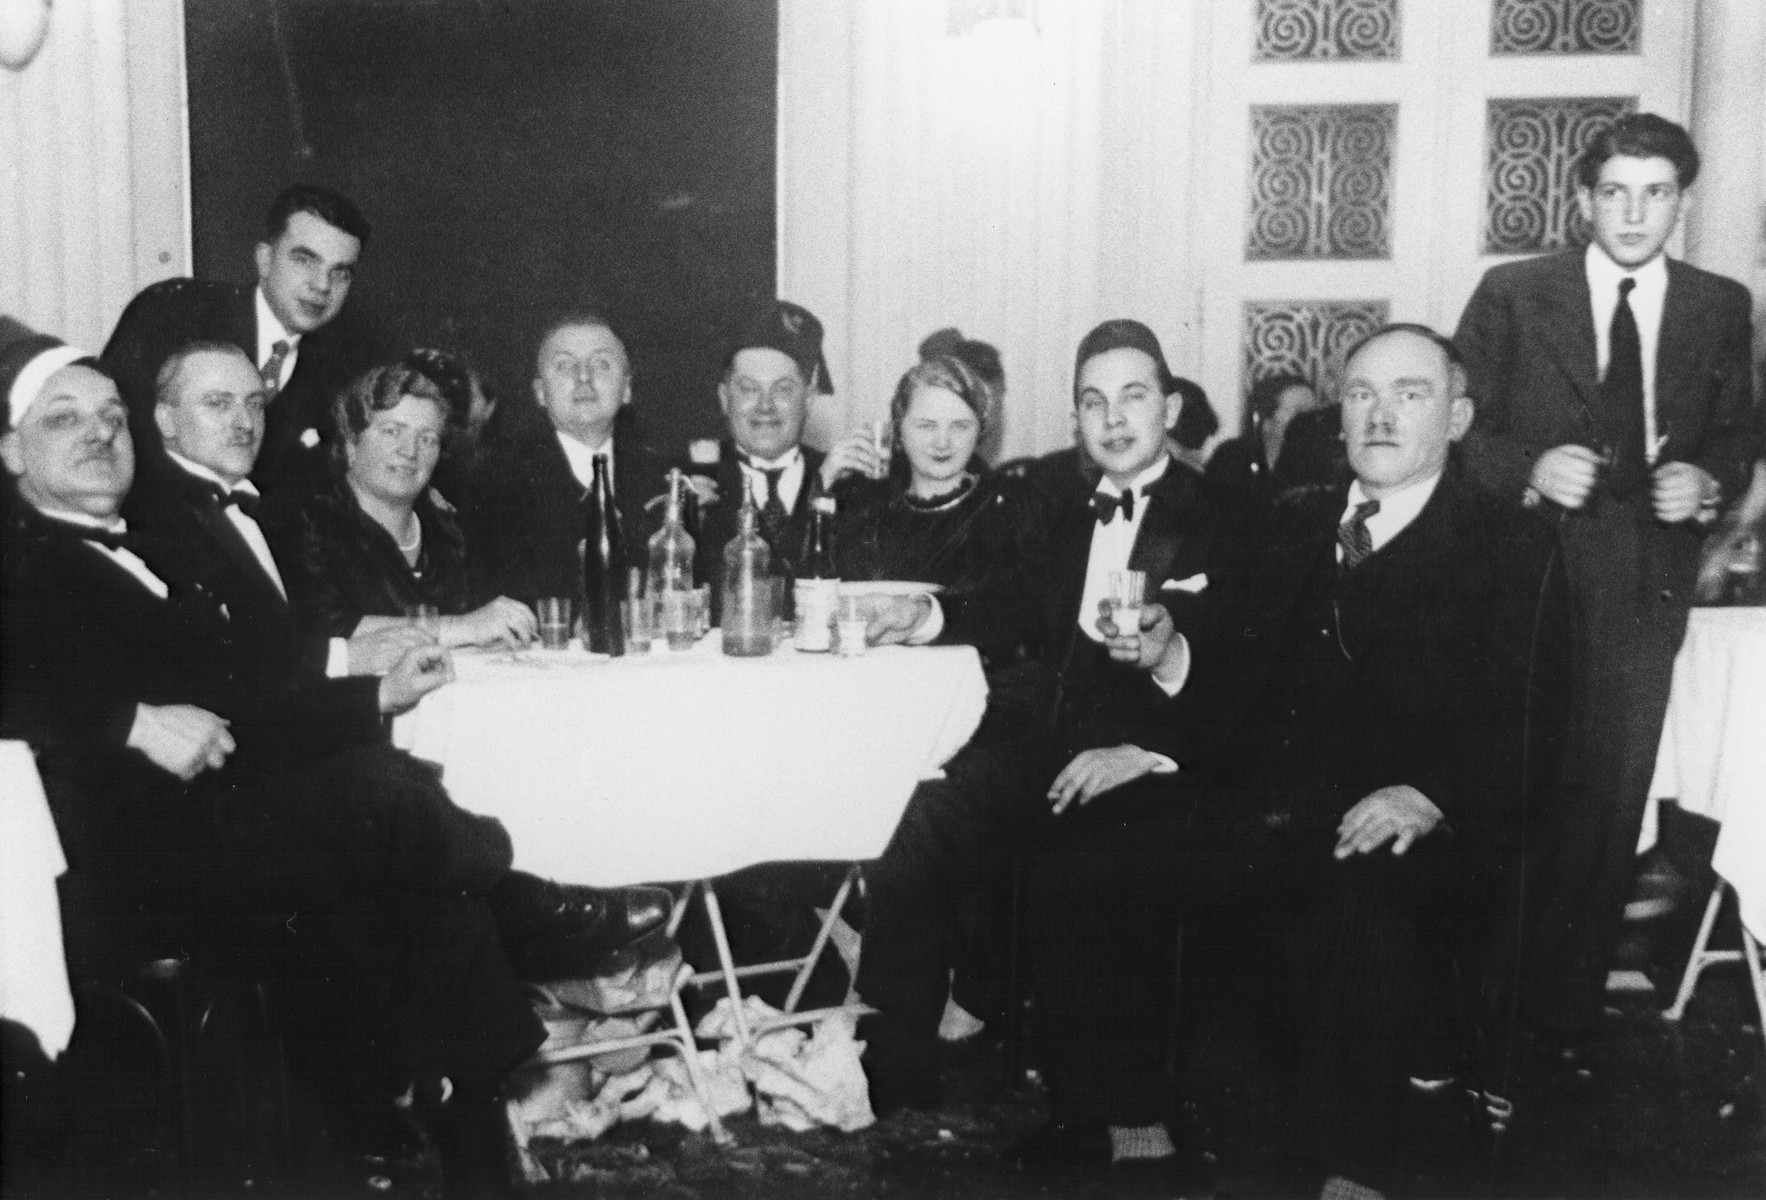 A group of Jewish friends in Zagreb raise their glasses at a social gathering to celebrate the holiday of Purim.  Among those pictured is Josef Deutsch(center wearing a Turkish hat).